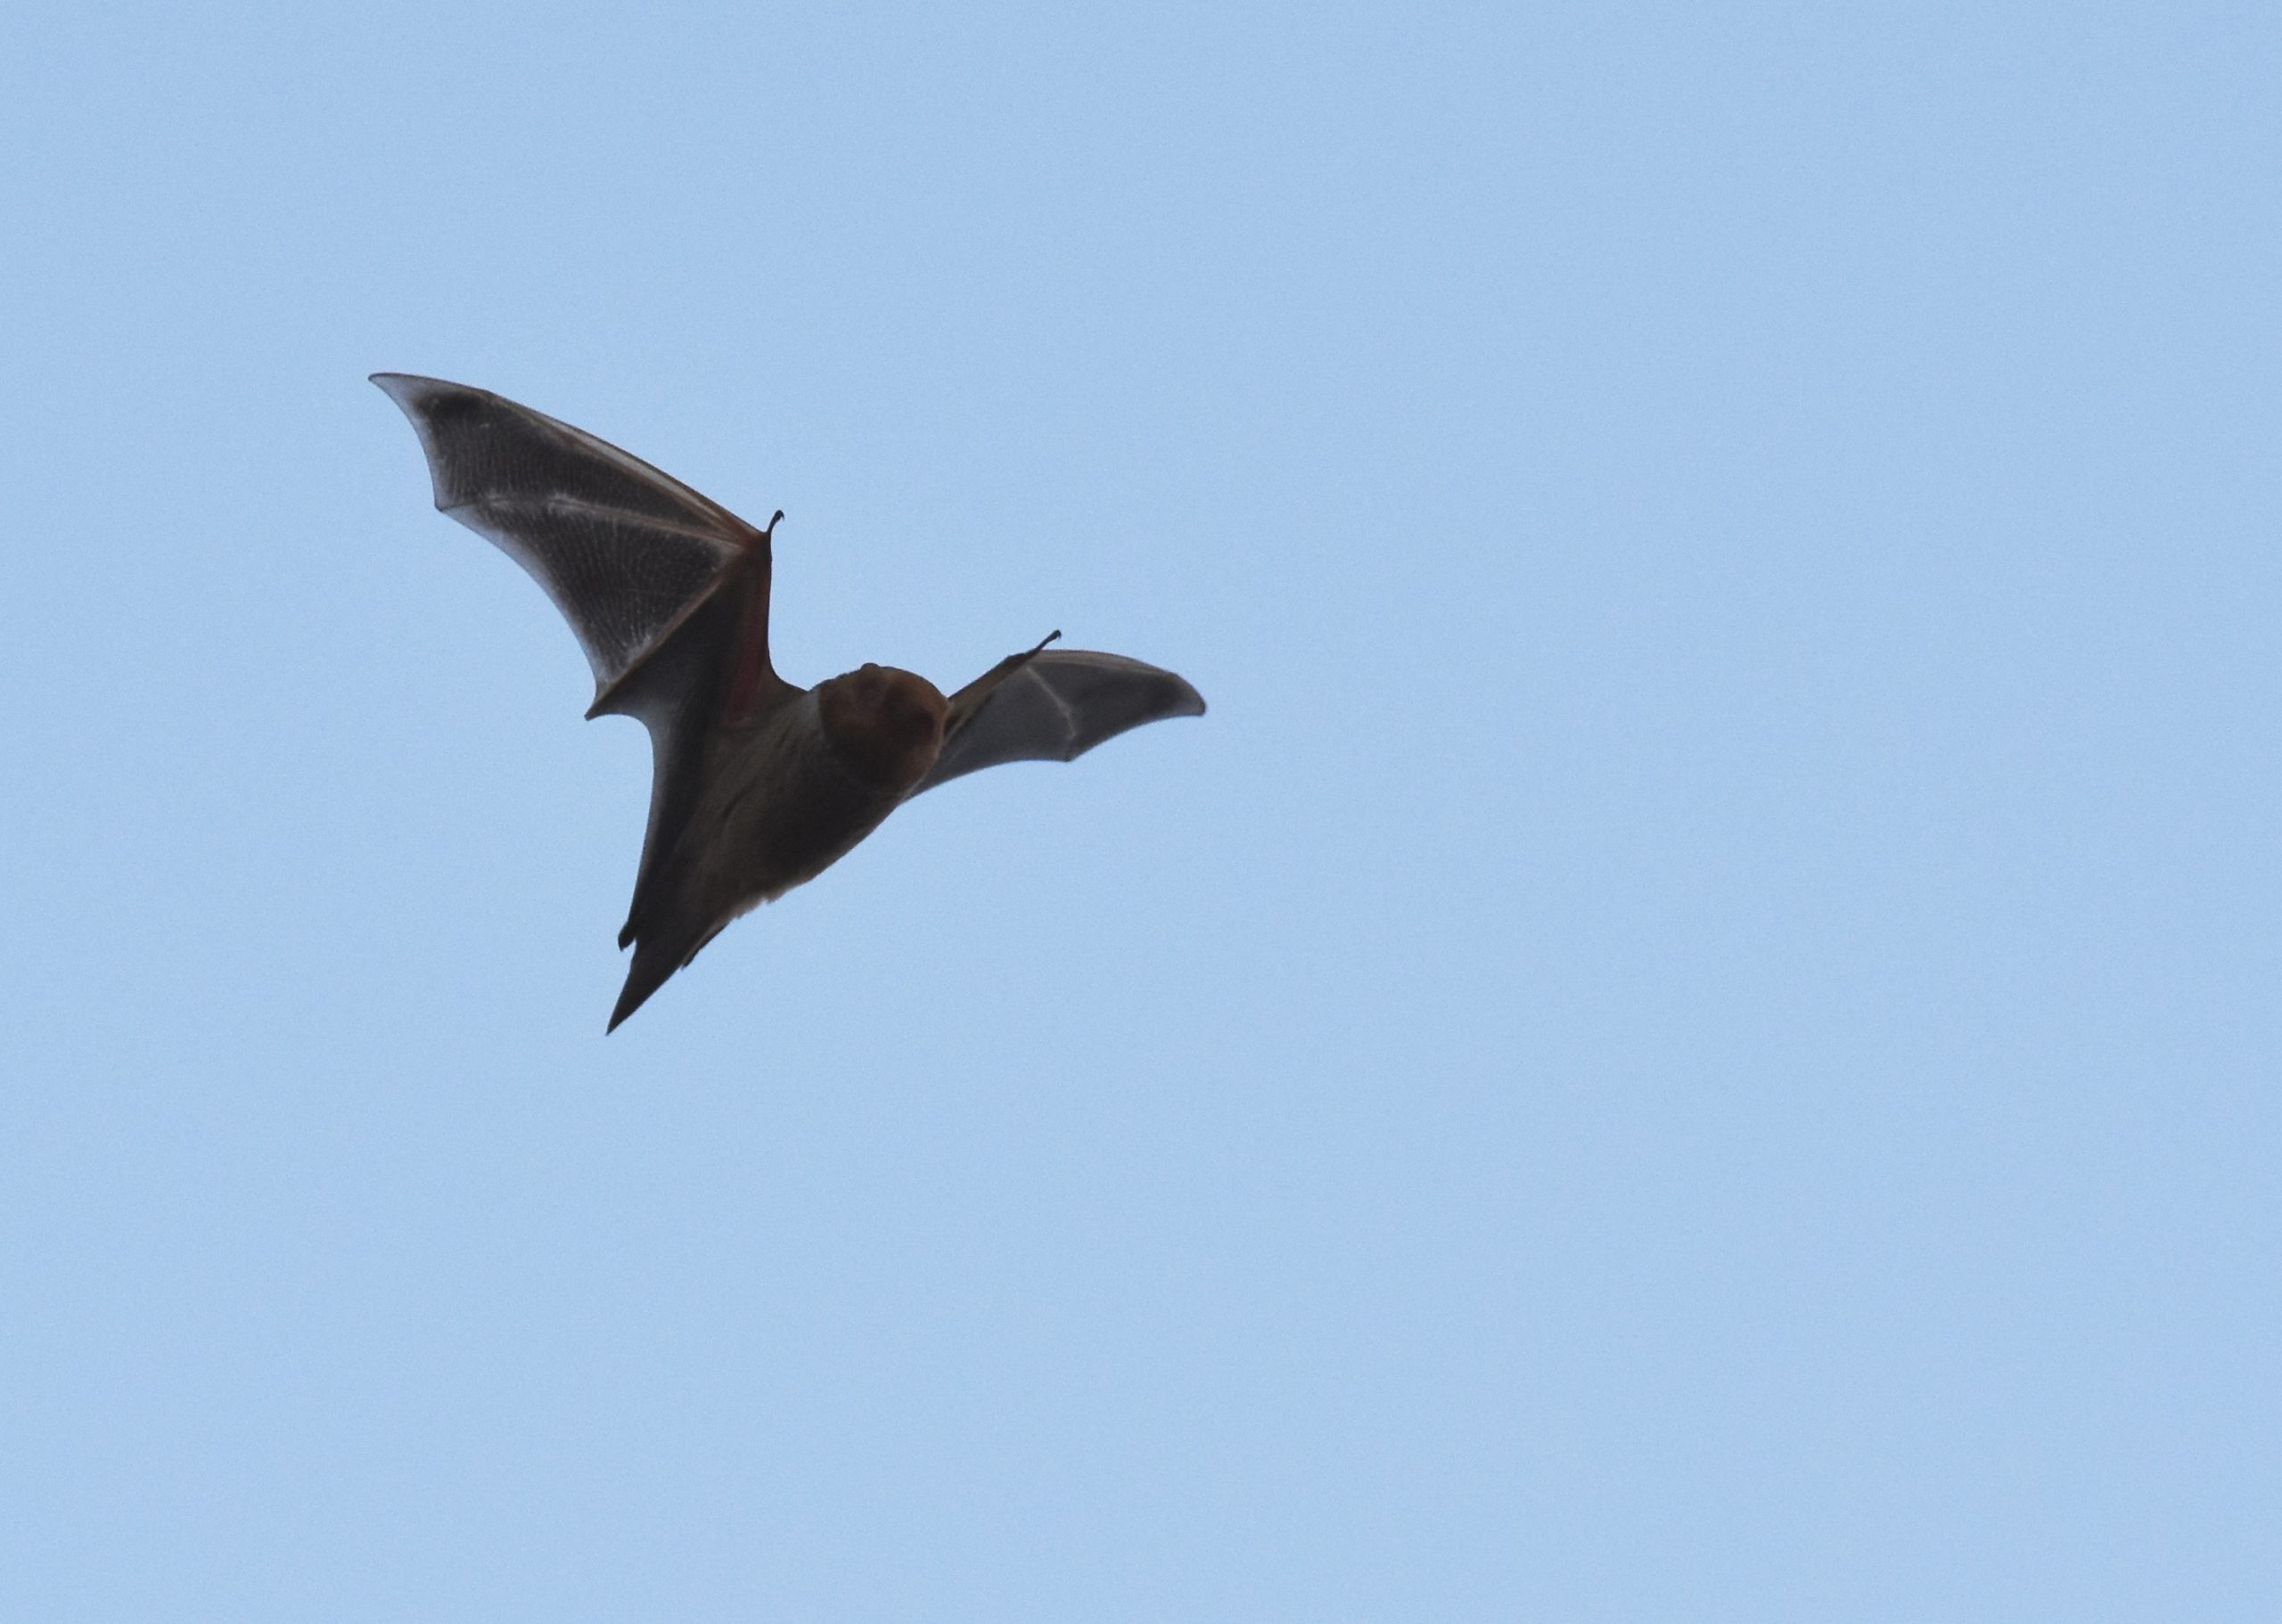 Image of an eastern red bat in flight